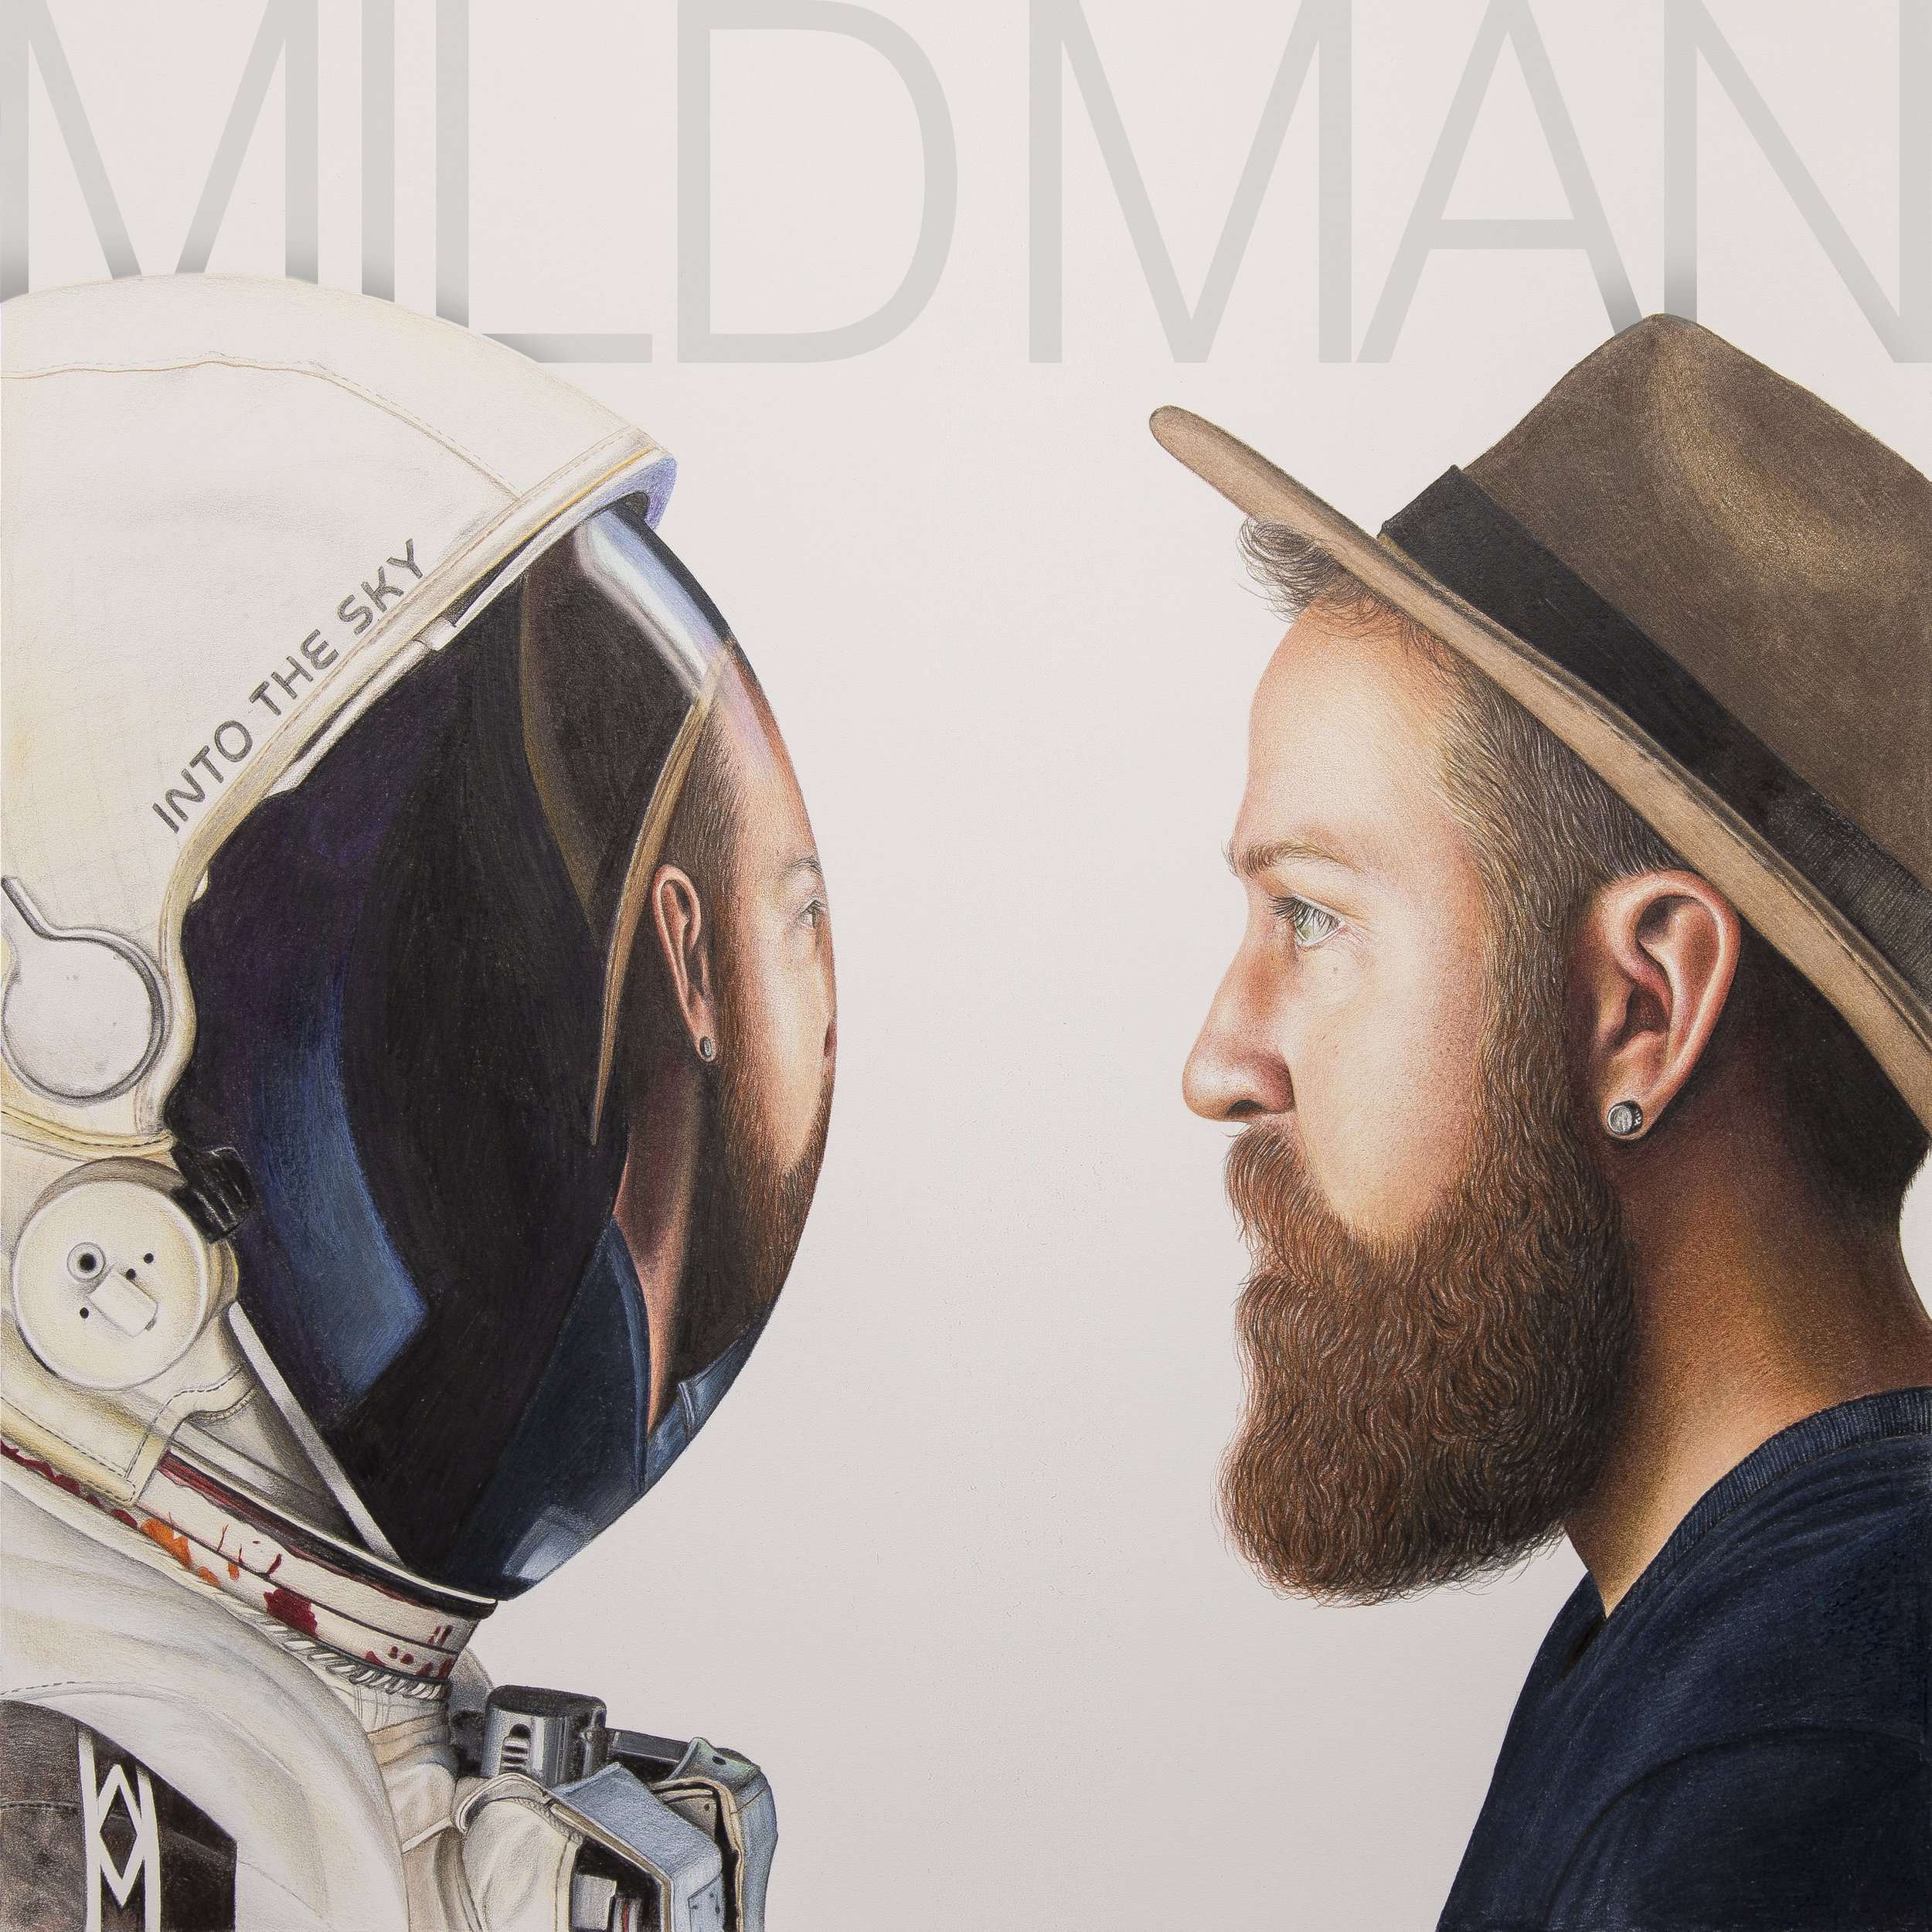 INTO THE SKY - By Mild Man10 TracksReleased February 10, 2017